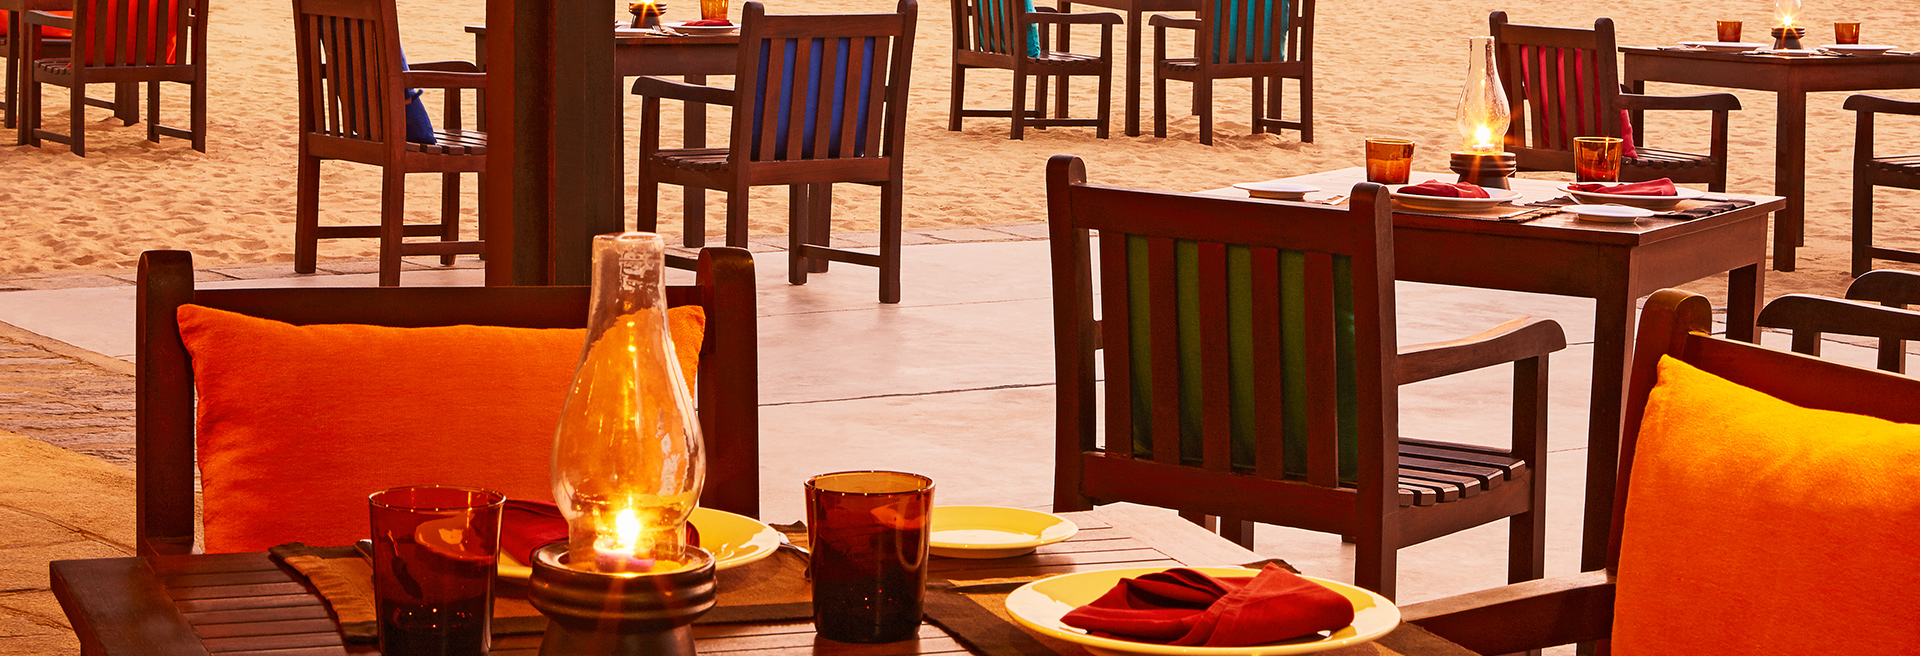 Outdoor dining on the beach of Negombo